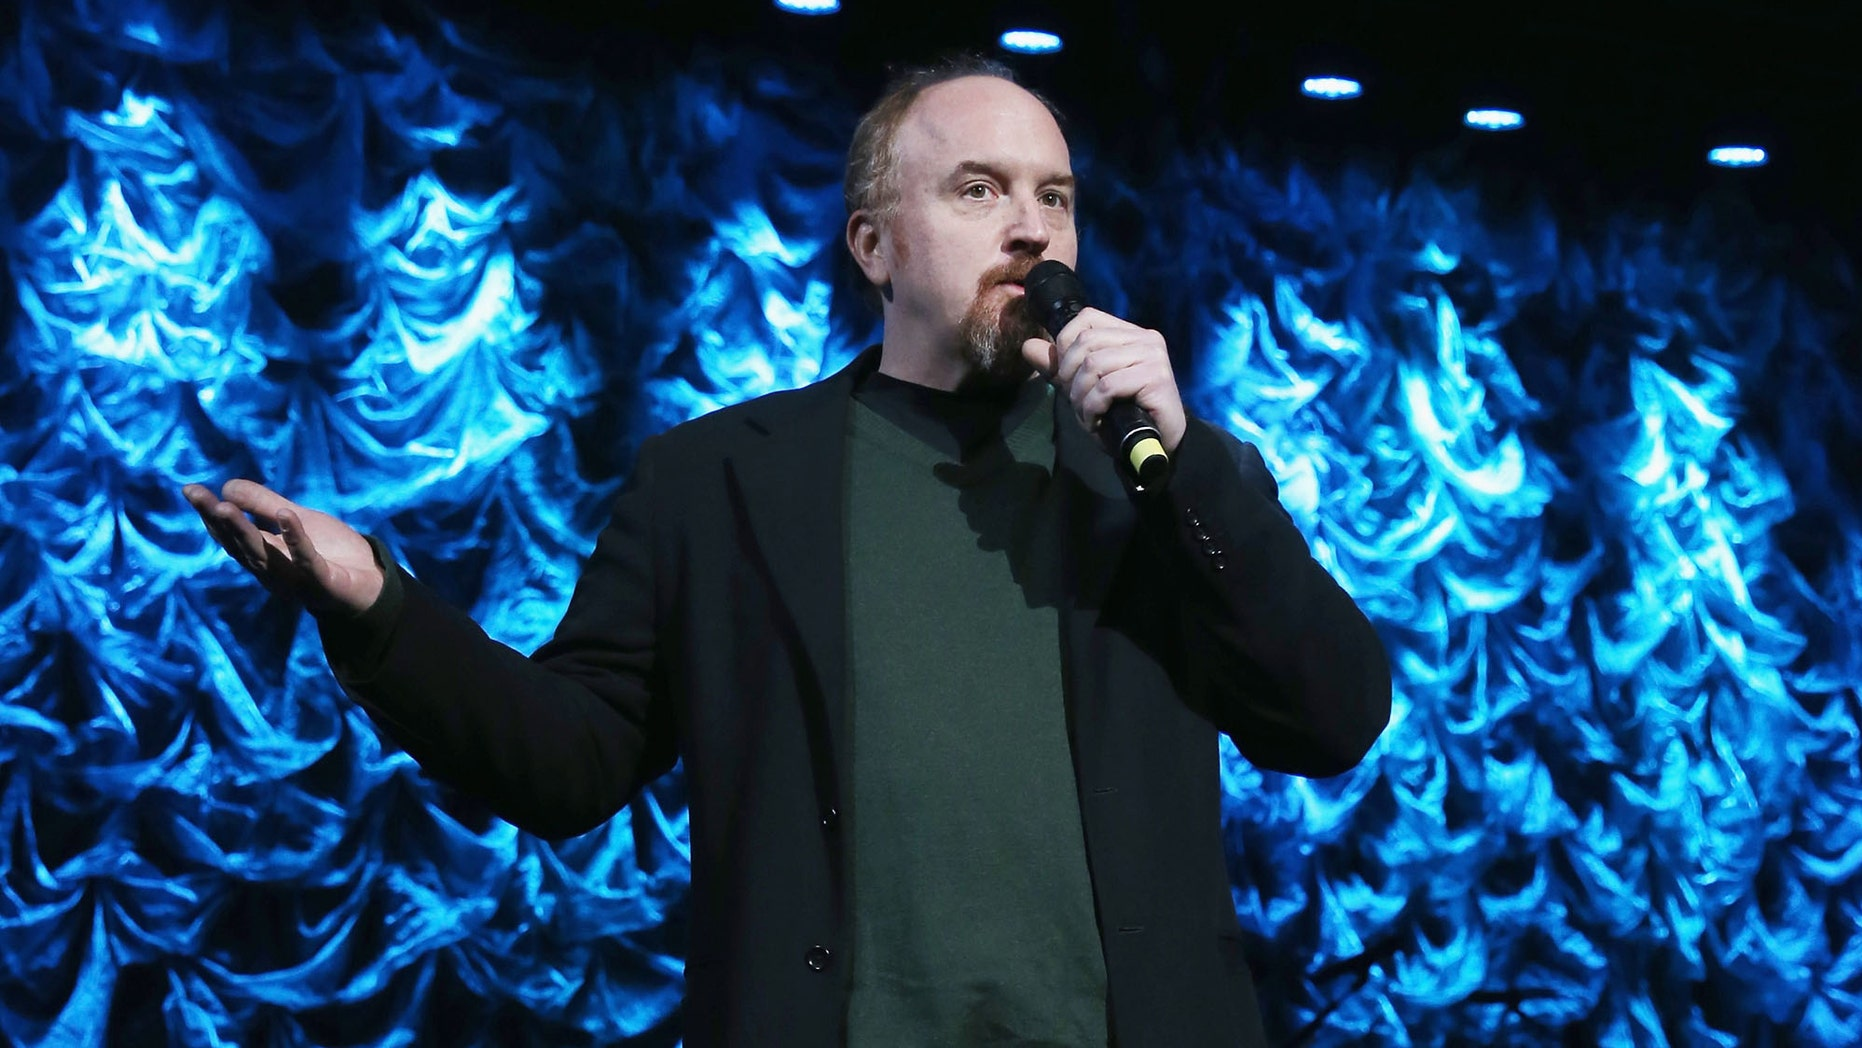 Louis CK  at Hammerstein Ballroom on January 31, 2014 in New York City.